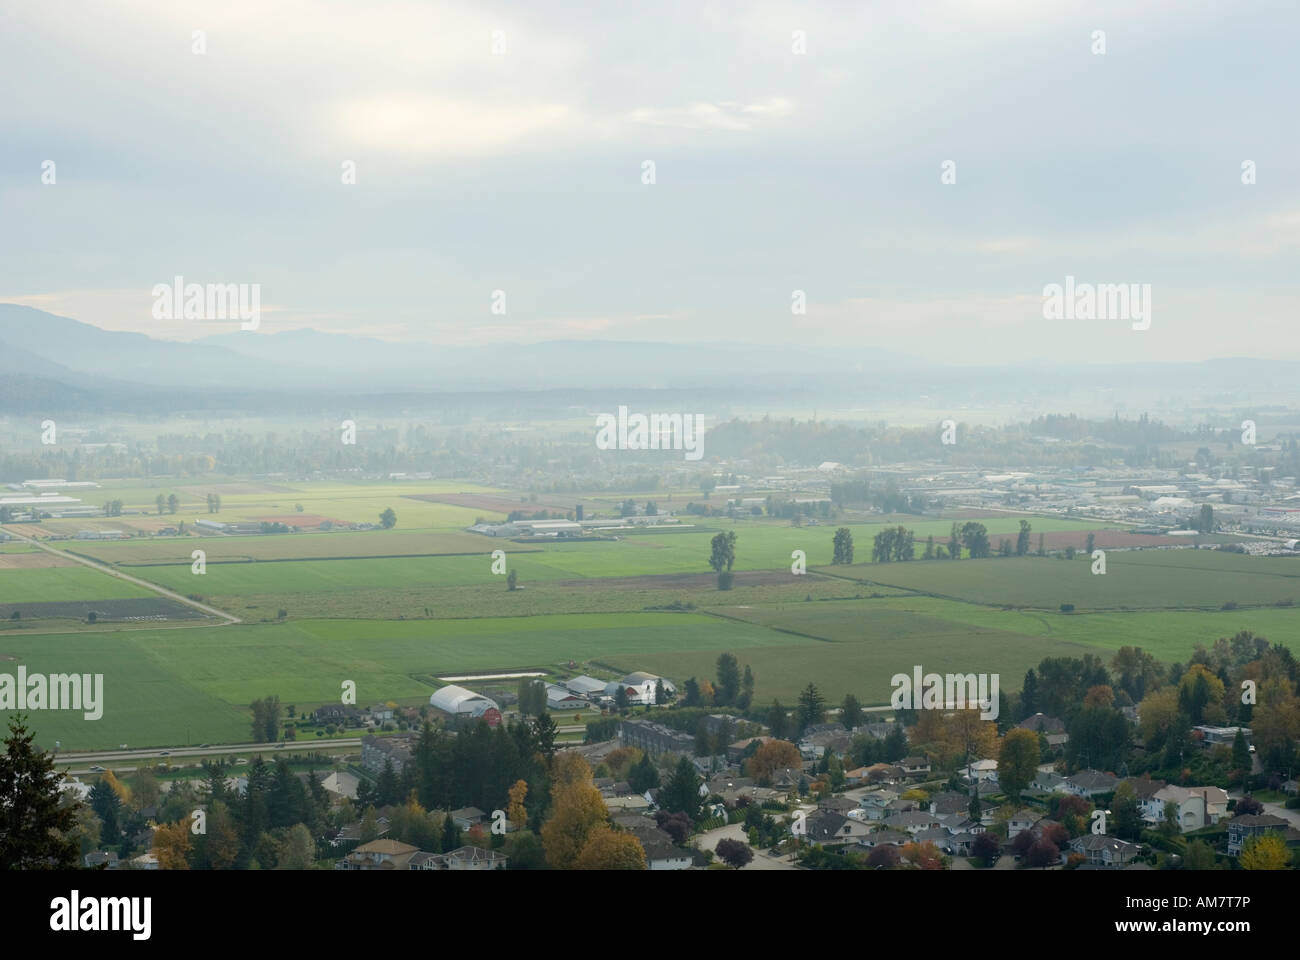 Air pollution trapped in the Fraser Valley at Abbotsford, British Columbia, Canada, 2007 - Stock Image